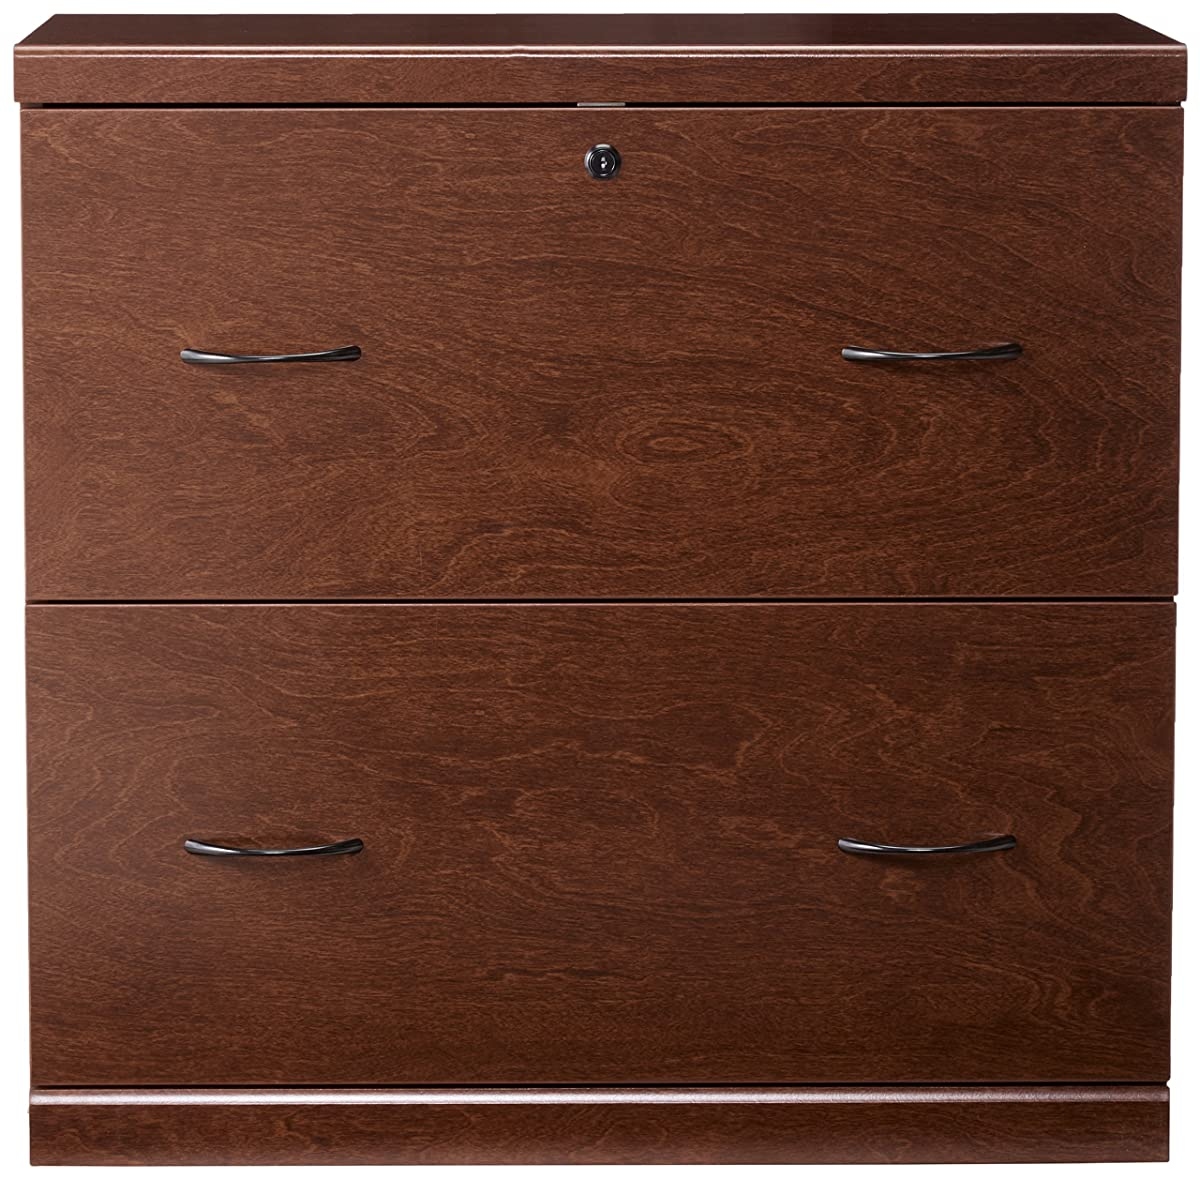 Z-Line Designs 2-Drawer Lateral File Cherry Cabinet with Black Accents